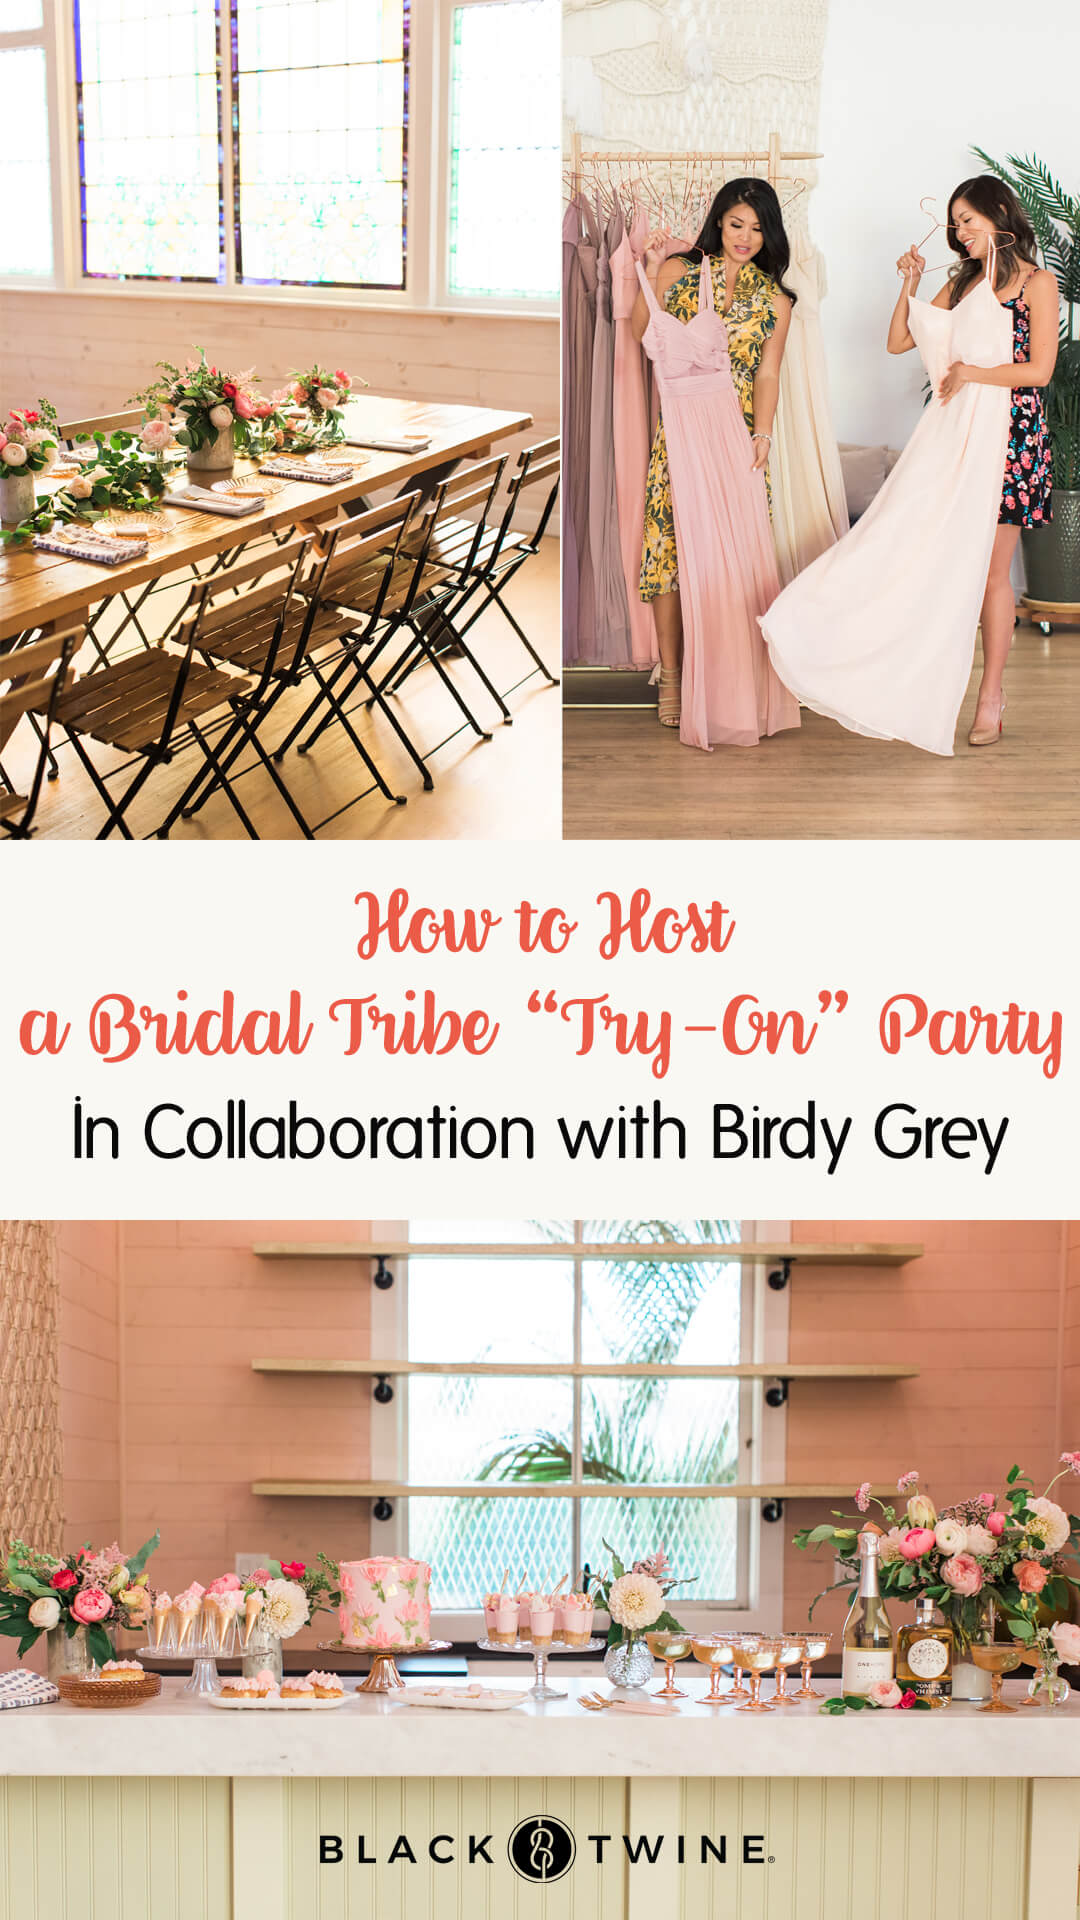 "Tablescape, Place Setting and Bridesmaids Trying Dresses On from Bridal Tribe ""Try-On"" Party styled by Black Twine In Collaboration with Birdy Grey"